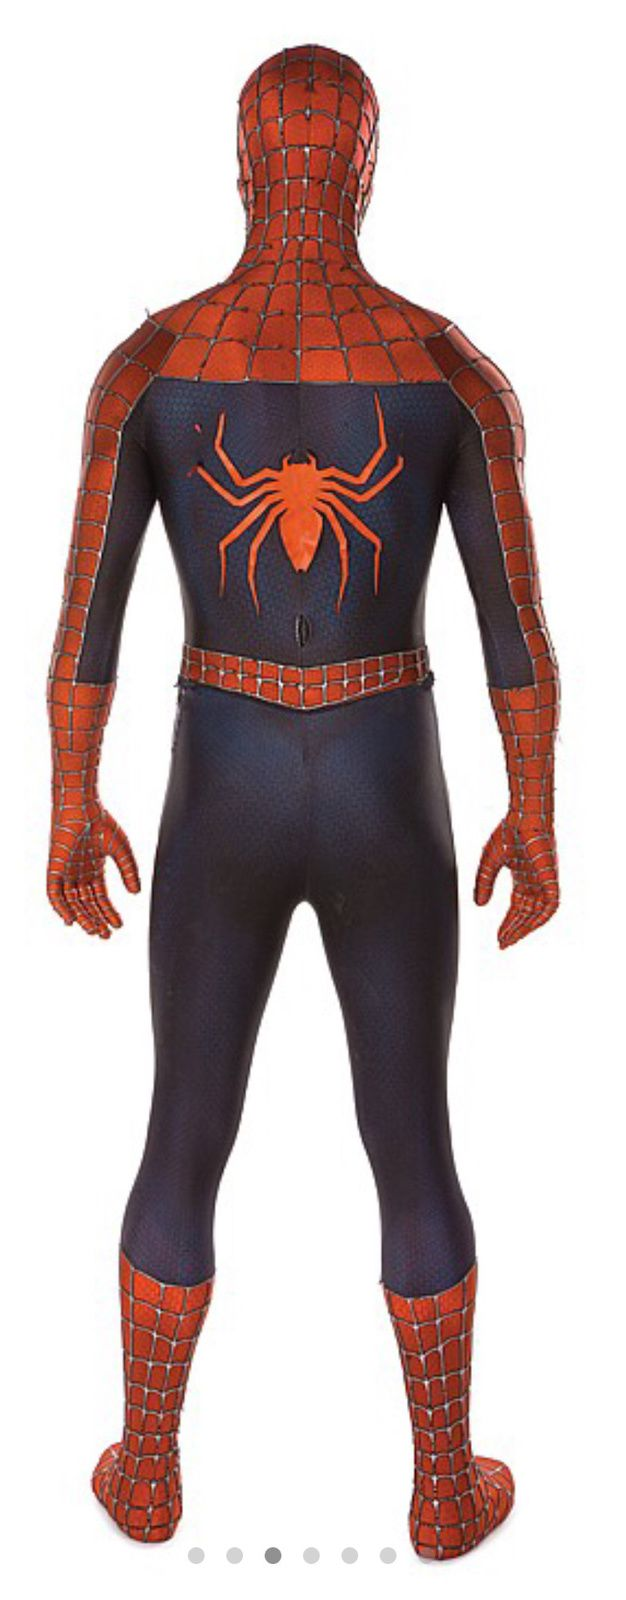 &quot&#x3B;Spider-Man&quot&#x3B; costume from Spider-Man 3